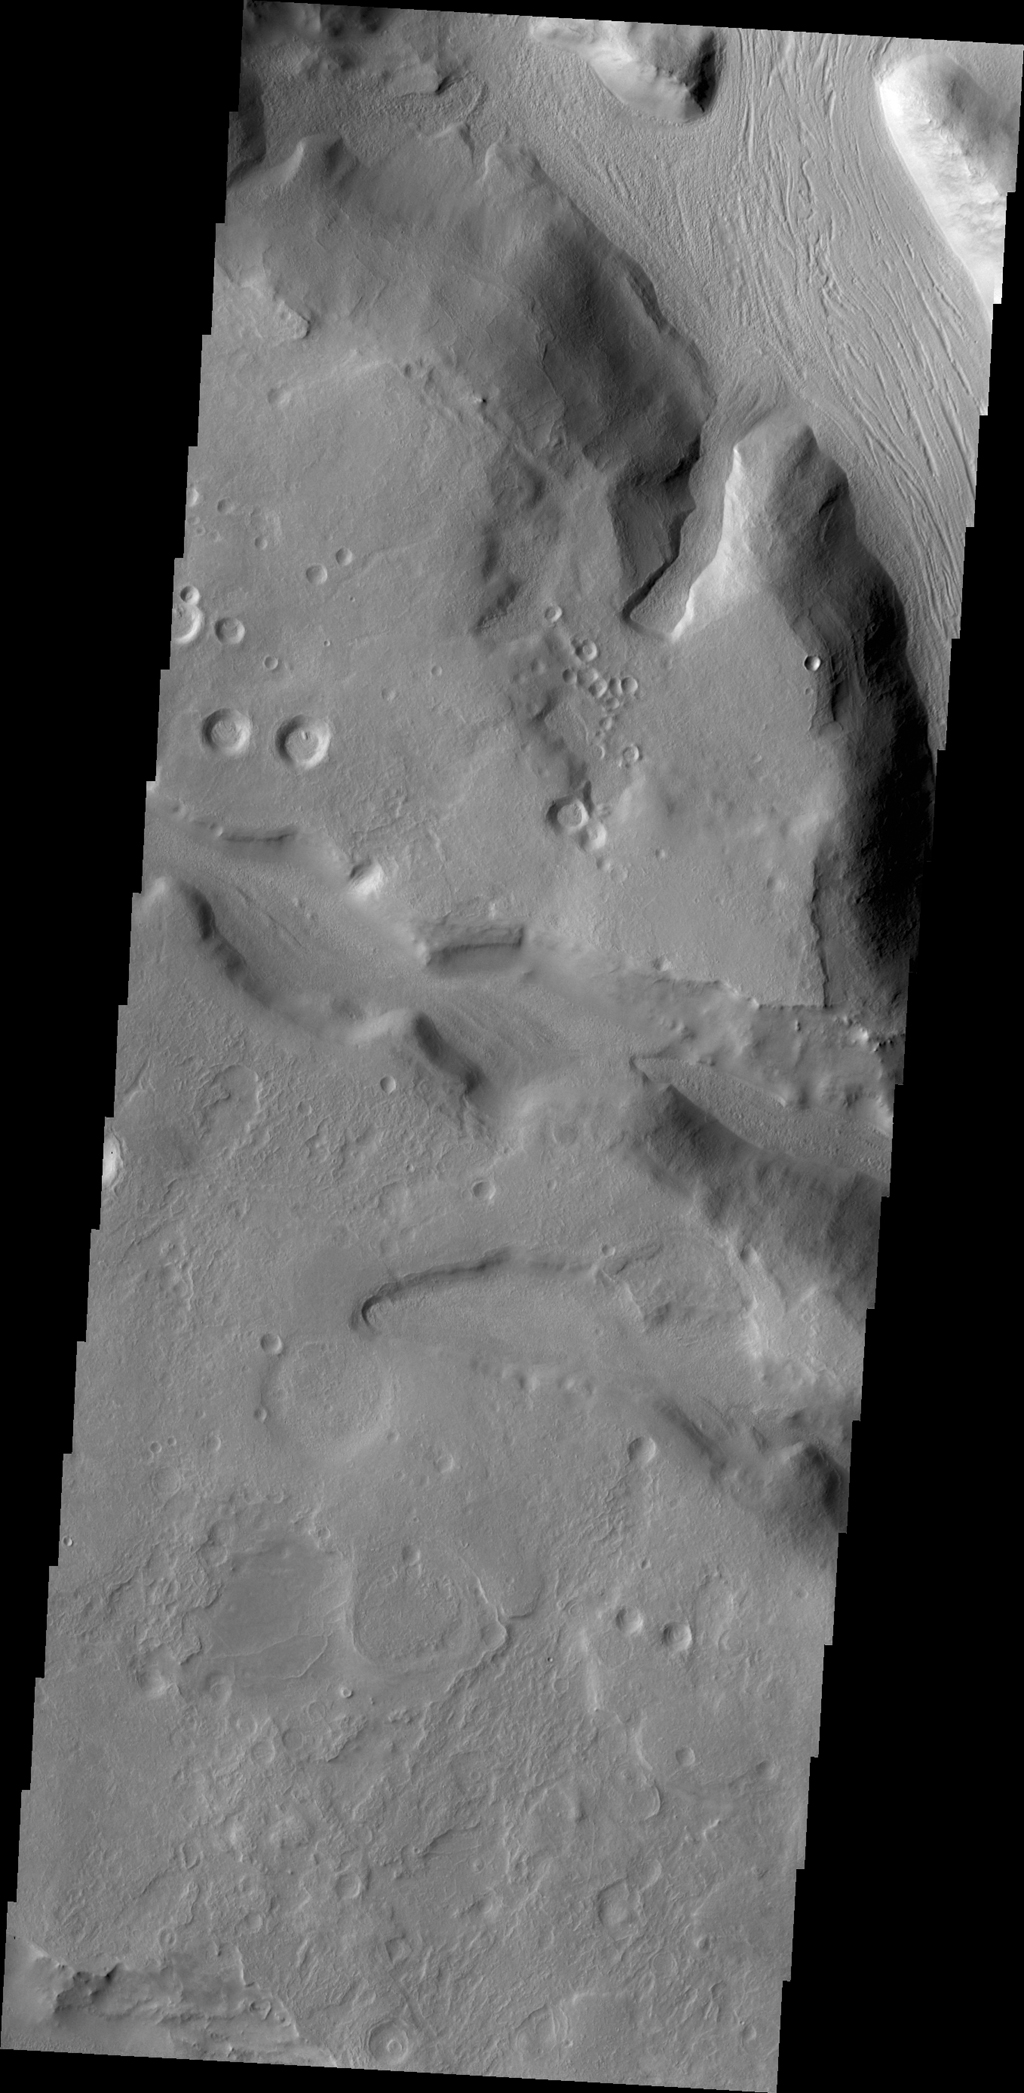 This image from NASA's 2001 Mars Odyssey spacecraft shows a portion of Naktong Vallis, located in Terra Sabaea on Mars.